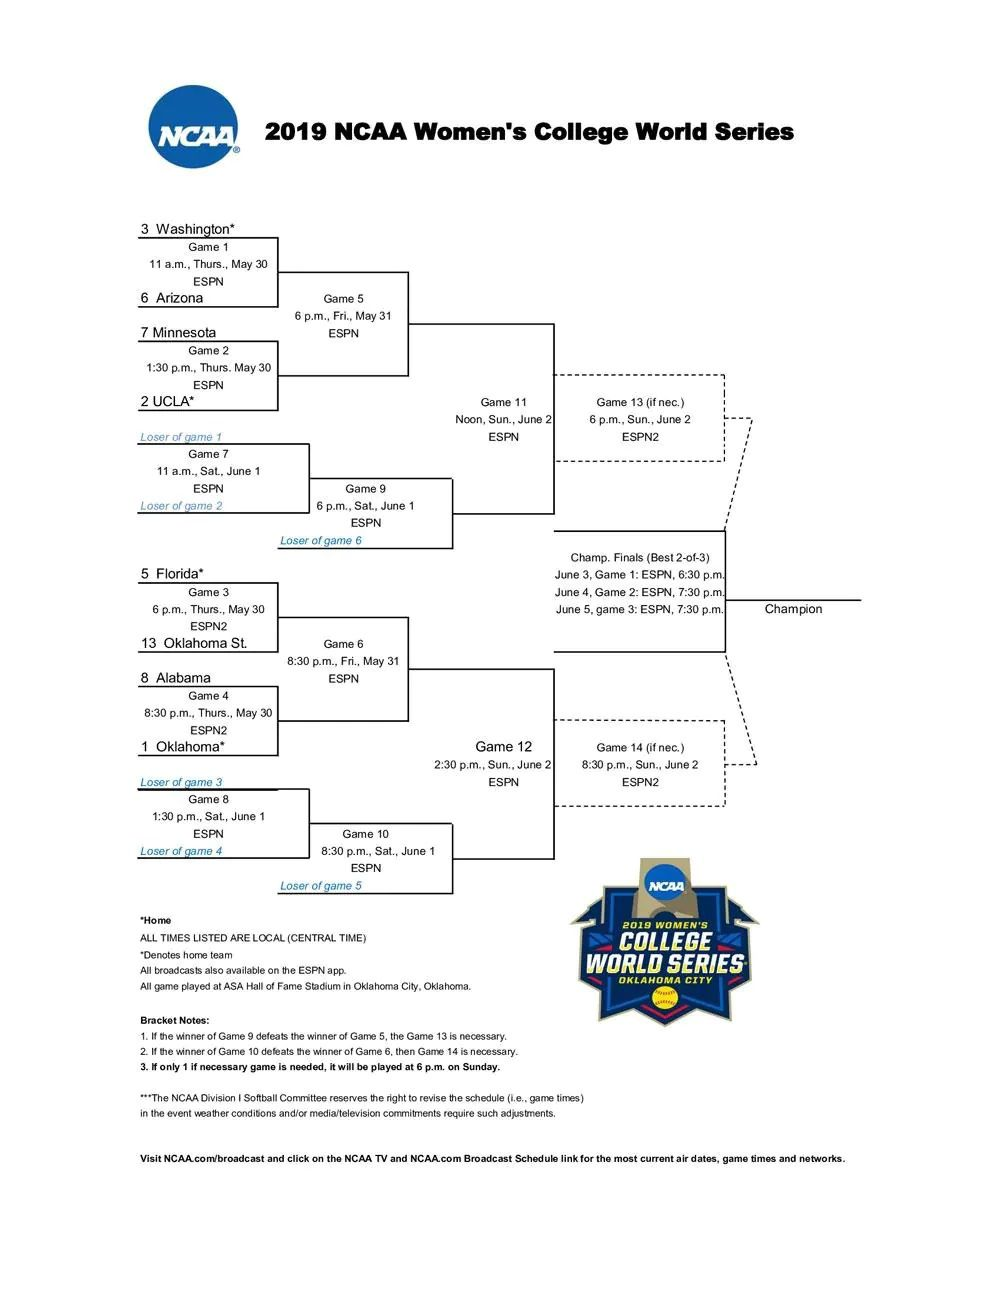 Gopher Softball will play UCLA in College World Series